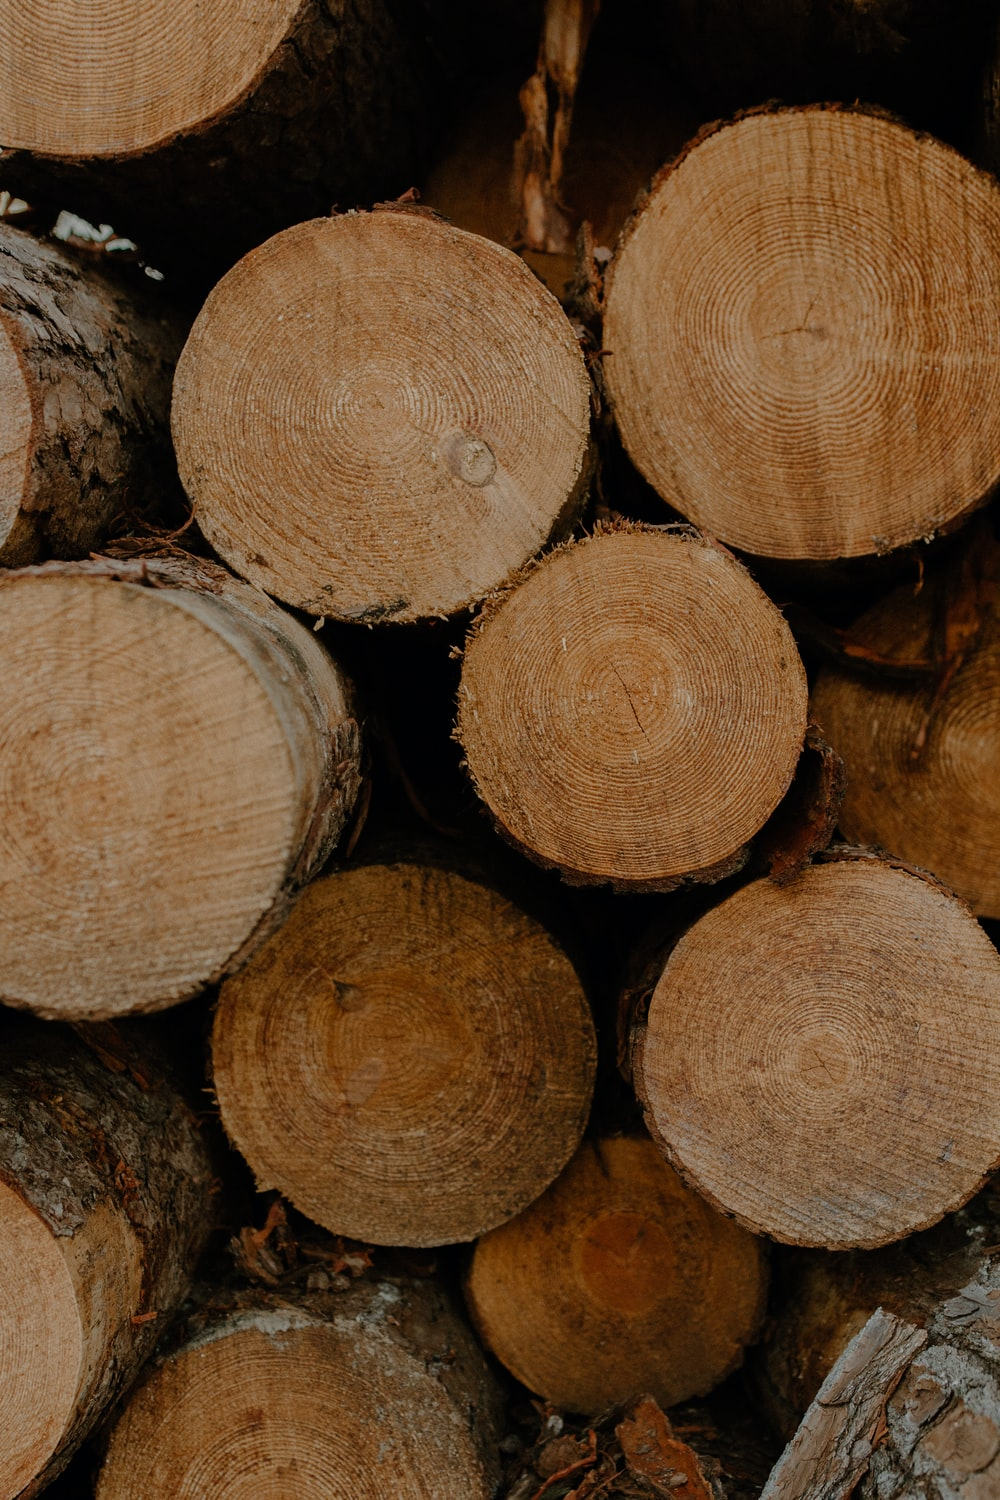 brown tree logs in close up photography